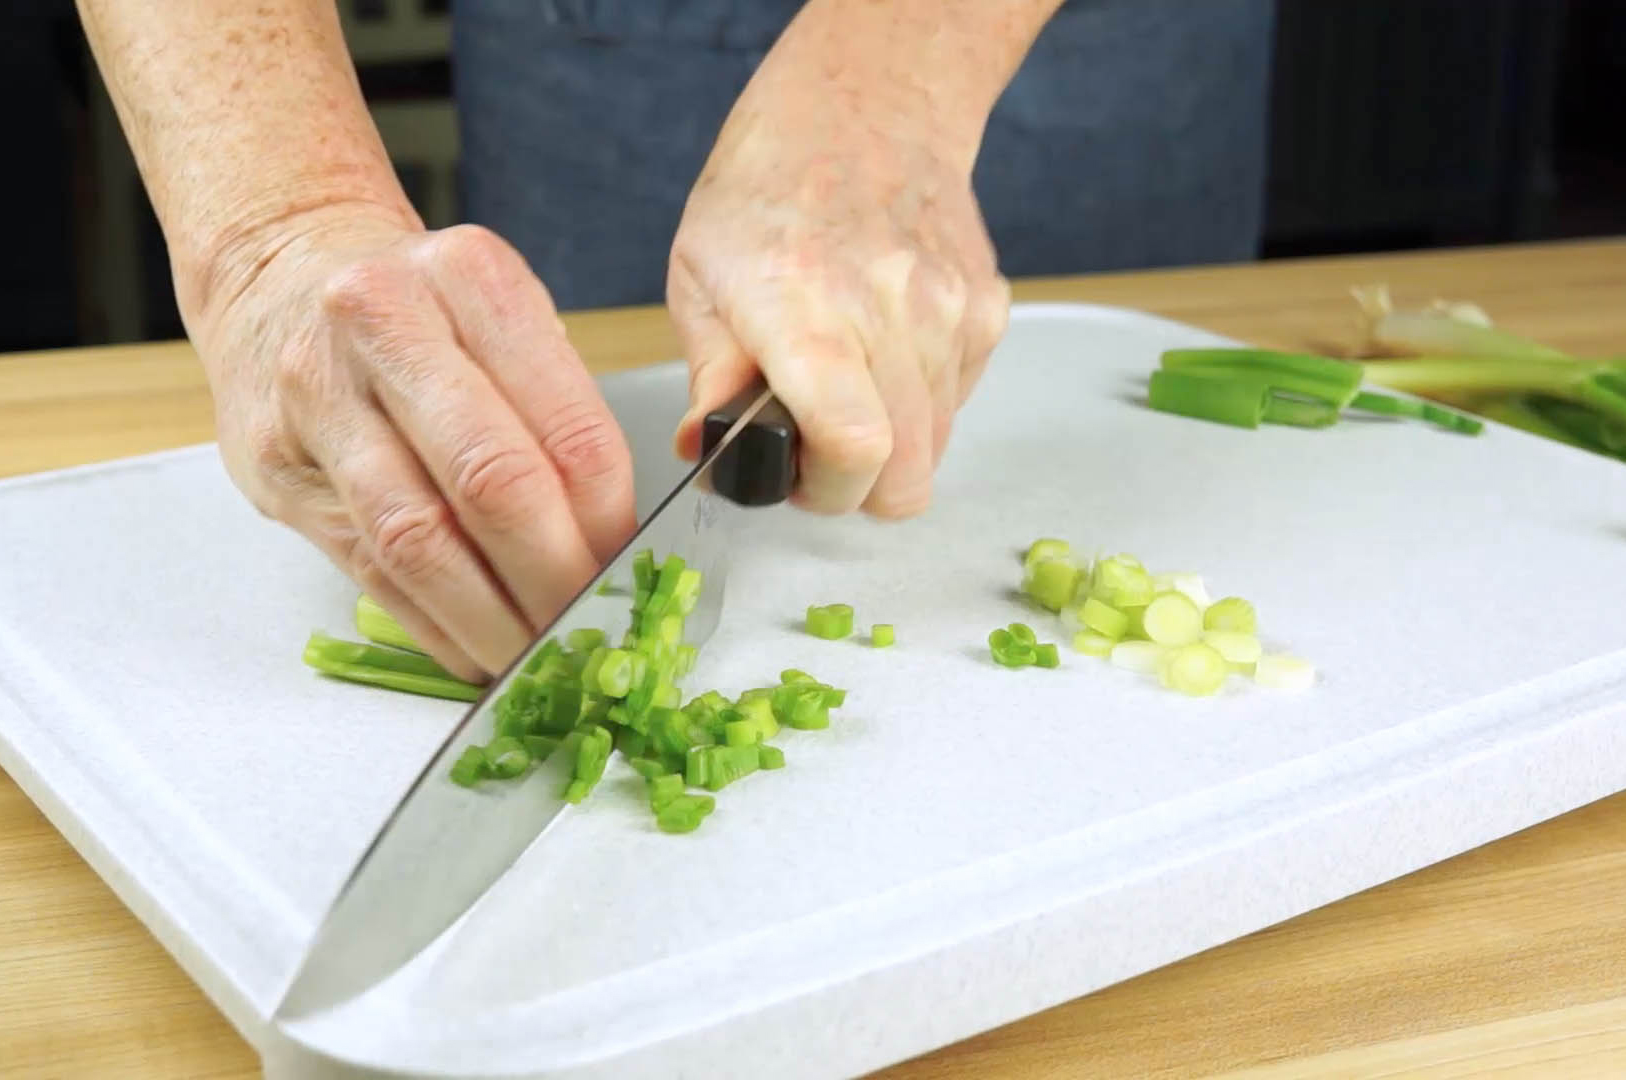 How to Slice Green Onion